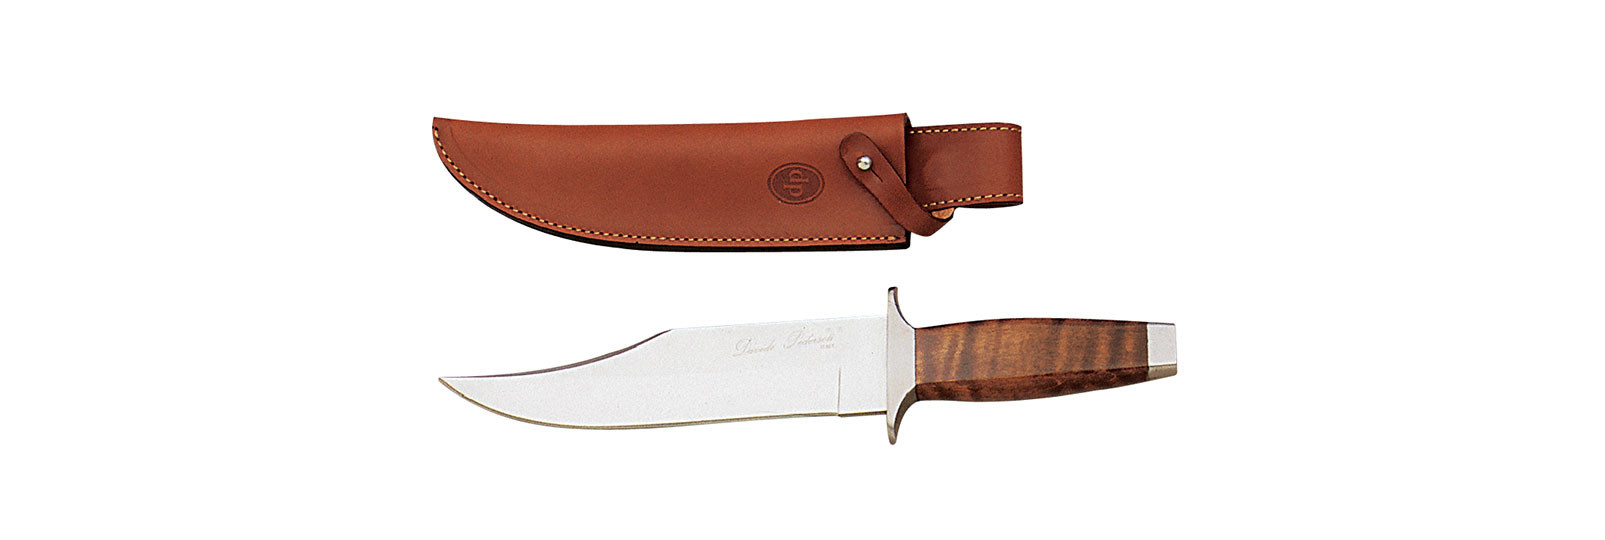 Bowie maple Knife with sheath